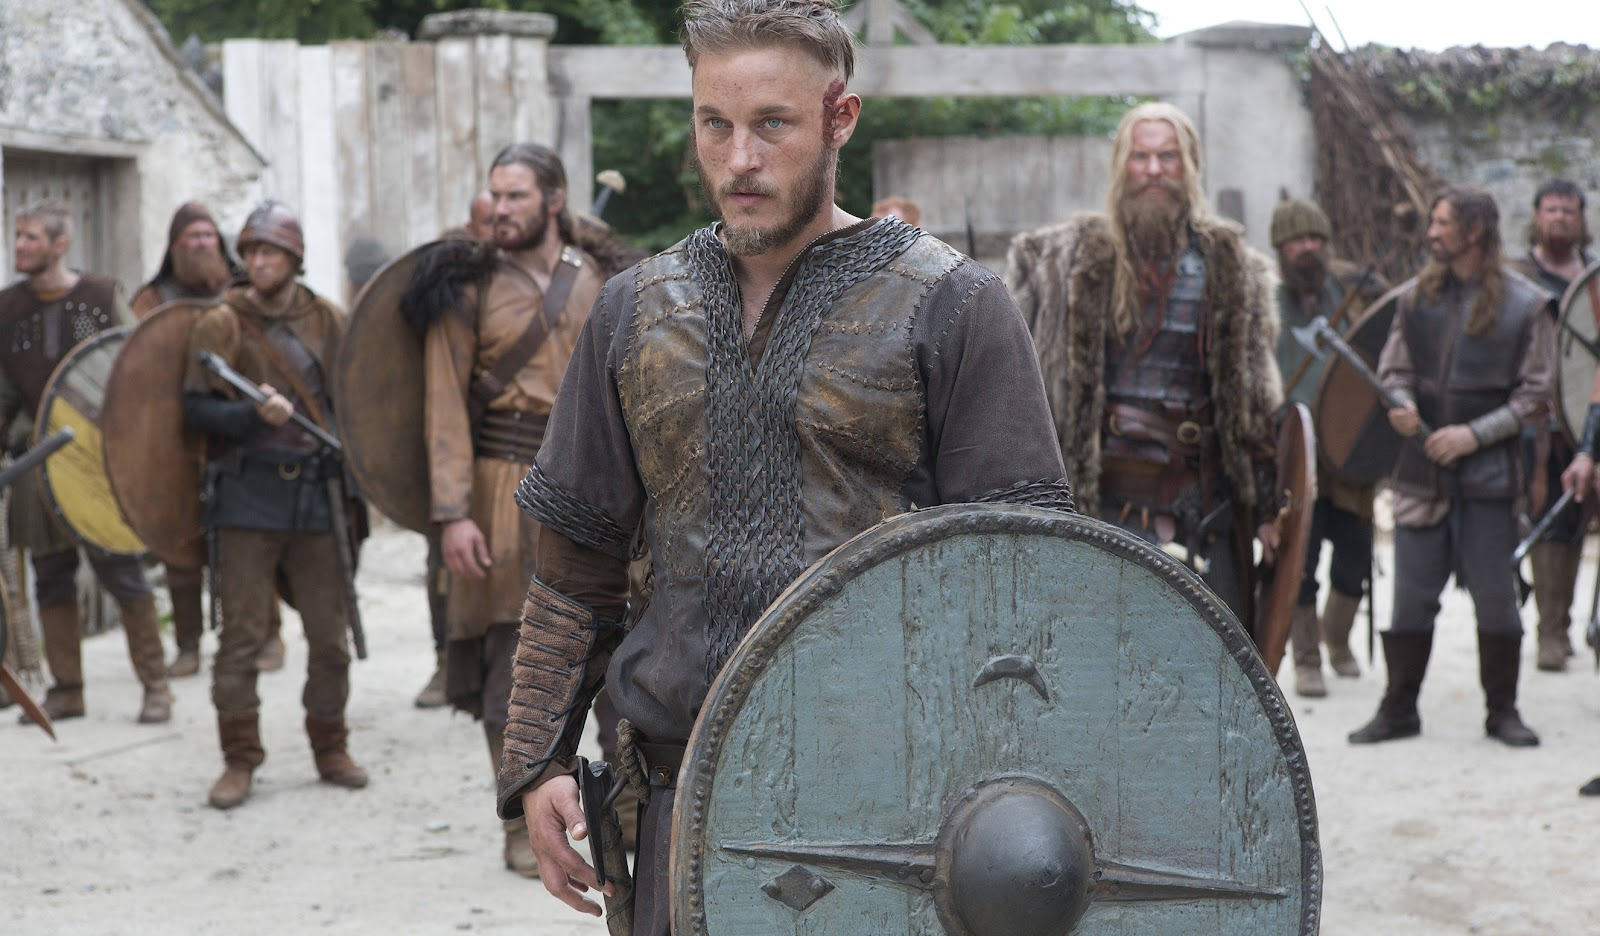 the existence of vikings research paper View essay - final research paper from apol 500 500 at liberty university duplicate the proof of gods existence: the ontological arguments of st anselm of canterbury tracey mills student.